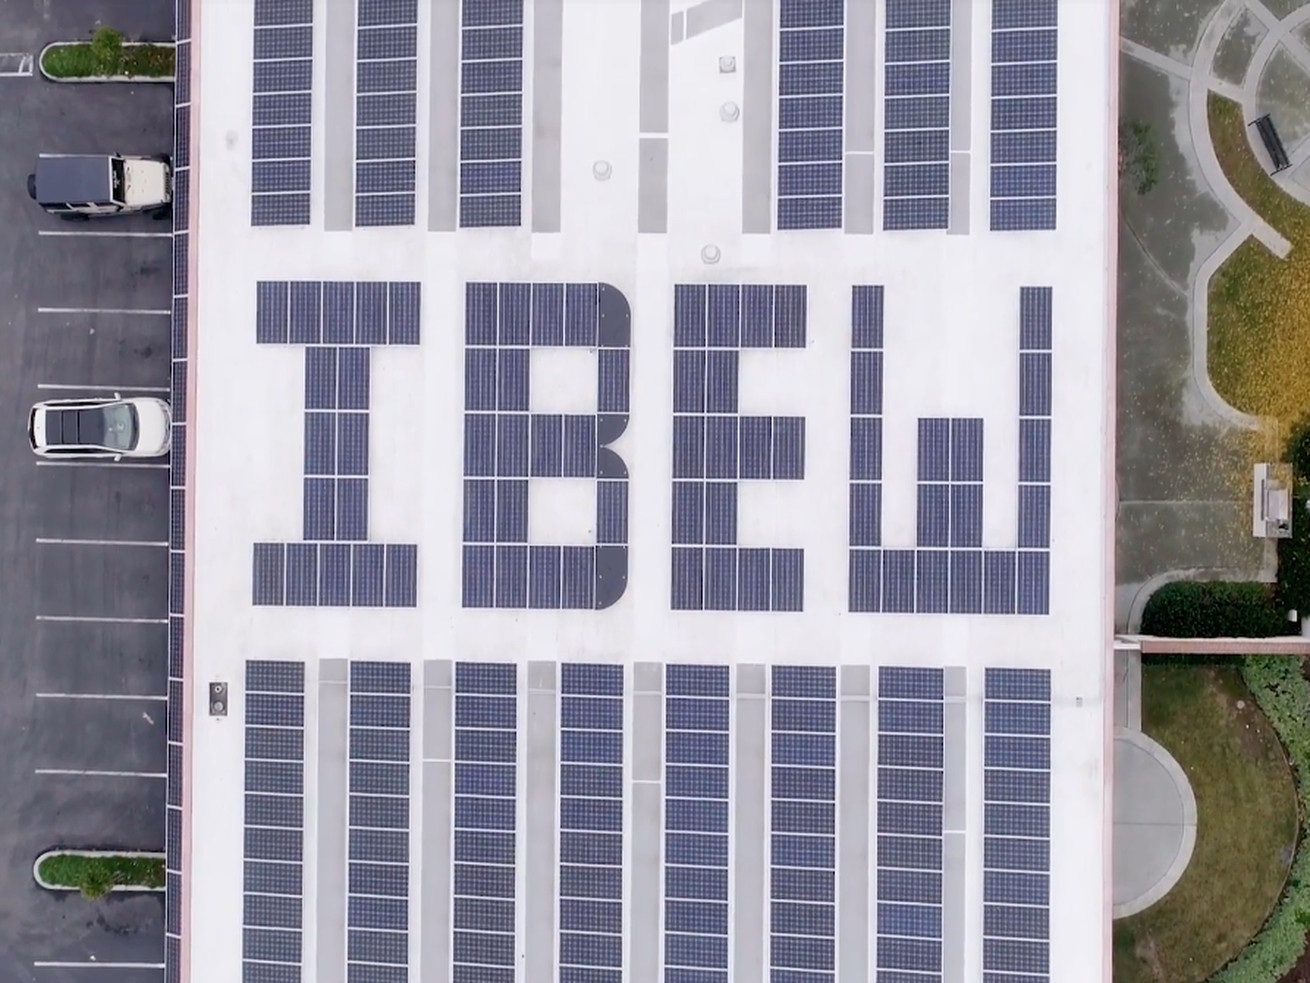 A solar photovoltaic array on top of the International Brotherhood of Electrical Workers Local 332 union hall in San Jose, California.